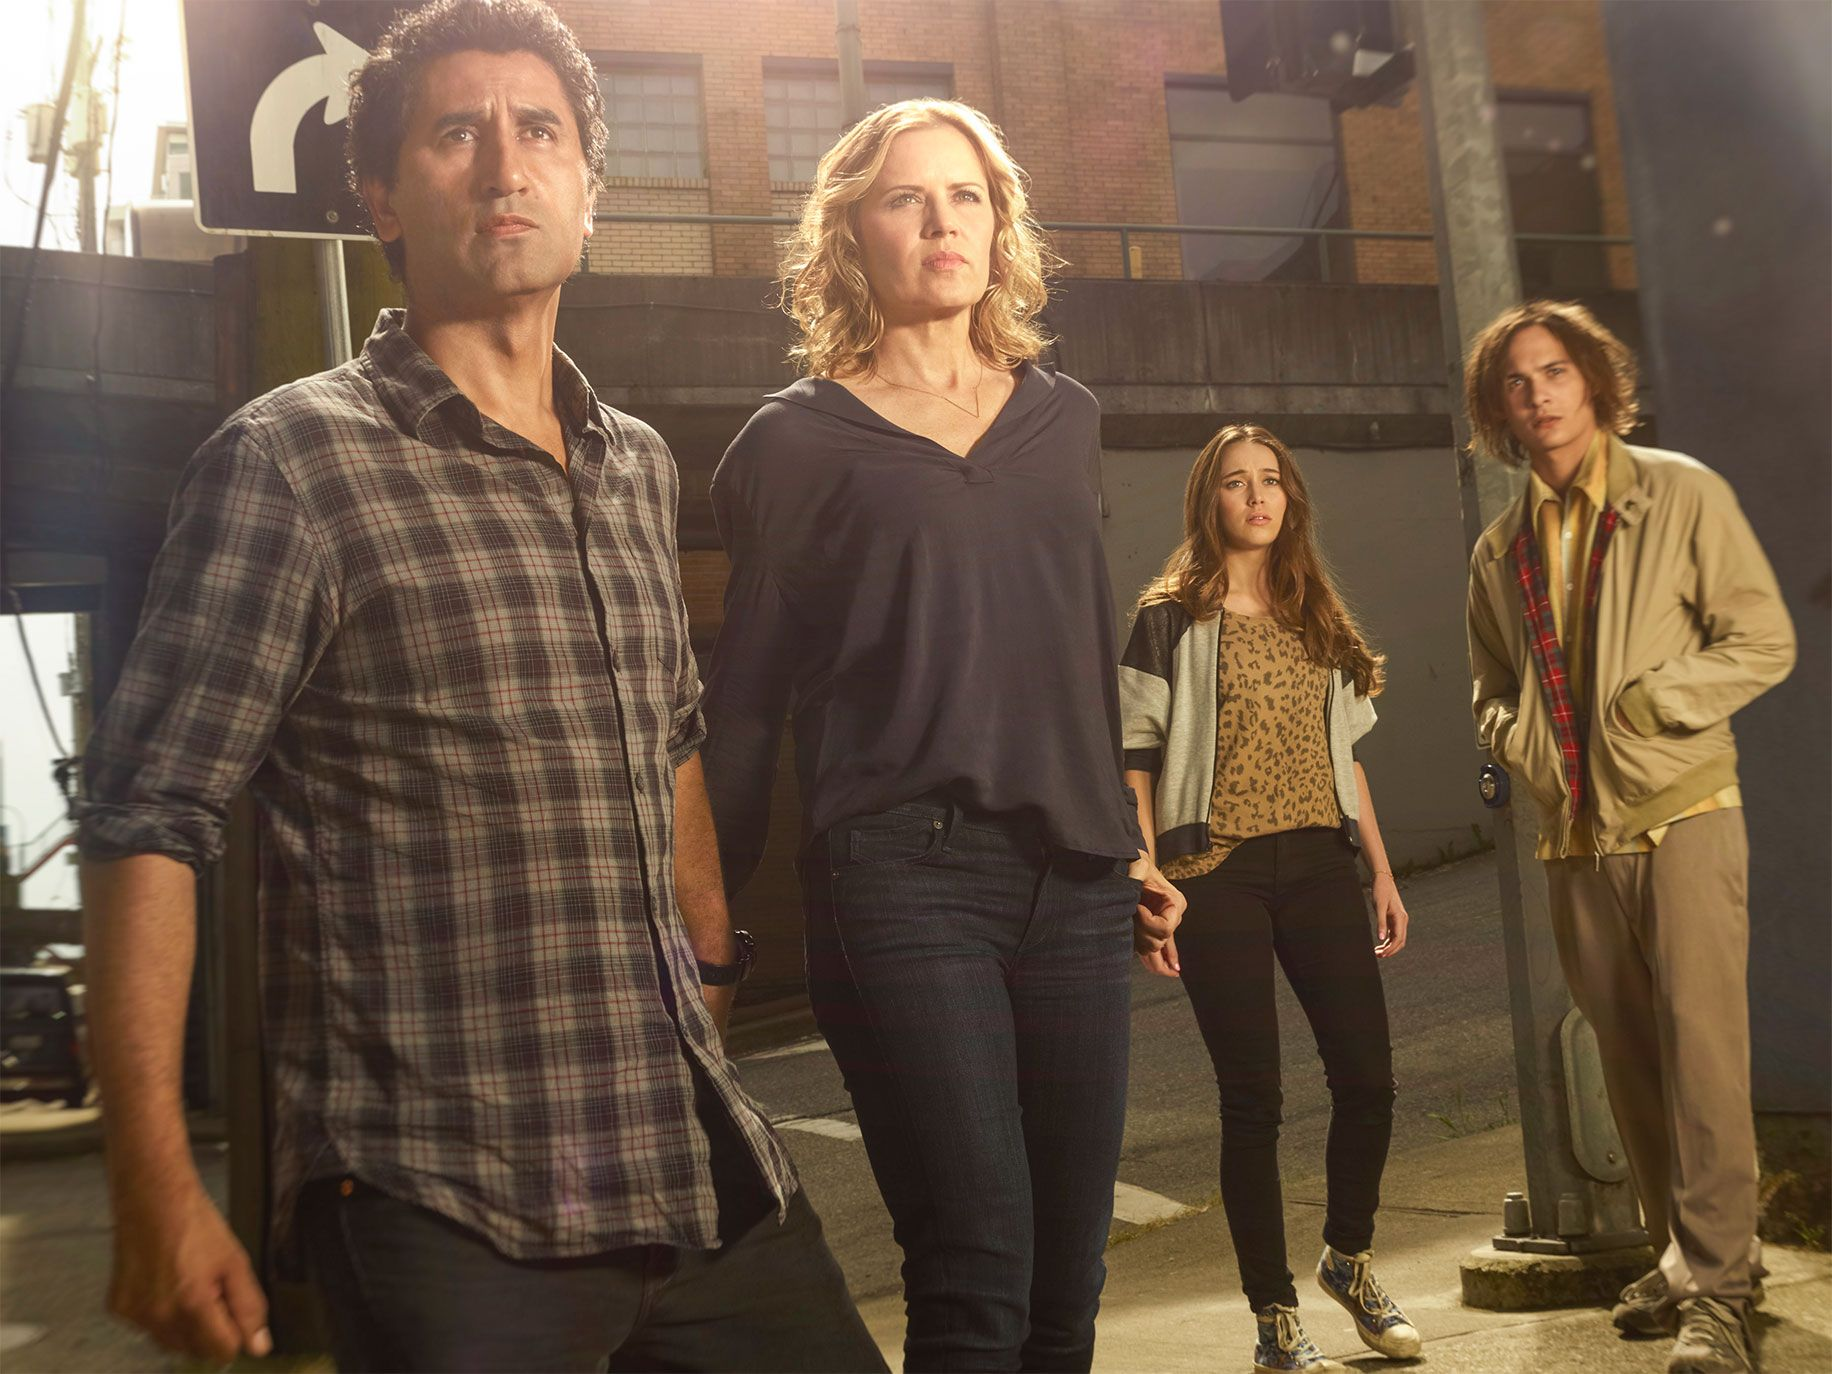 Cast members from the AMC series Fear the Walking Dead.